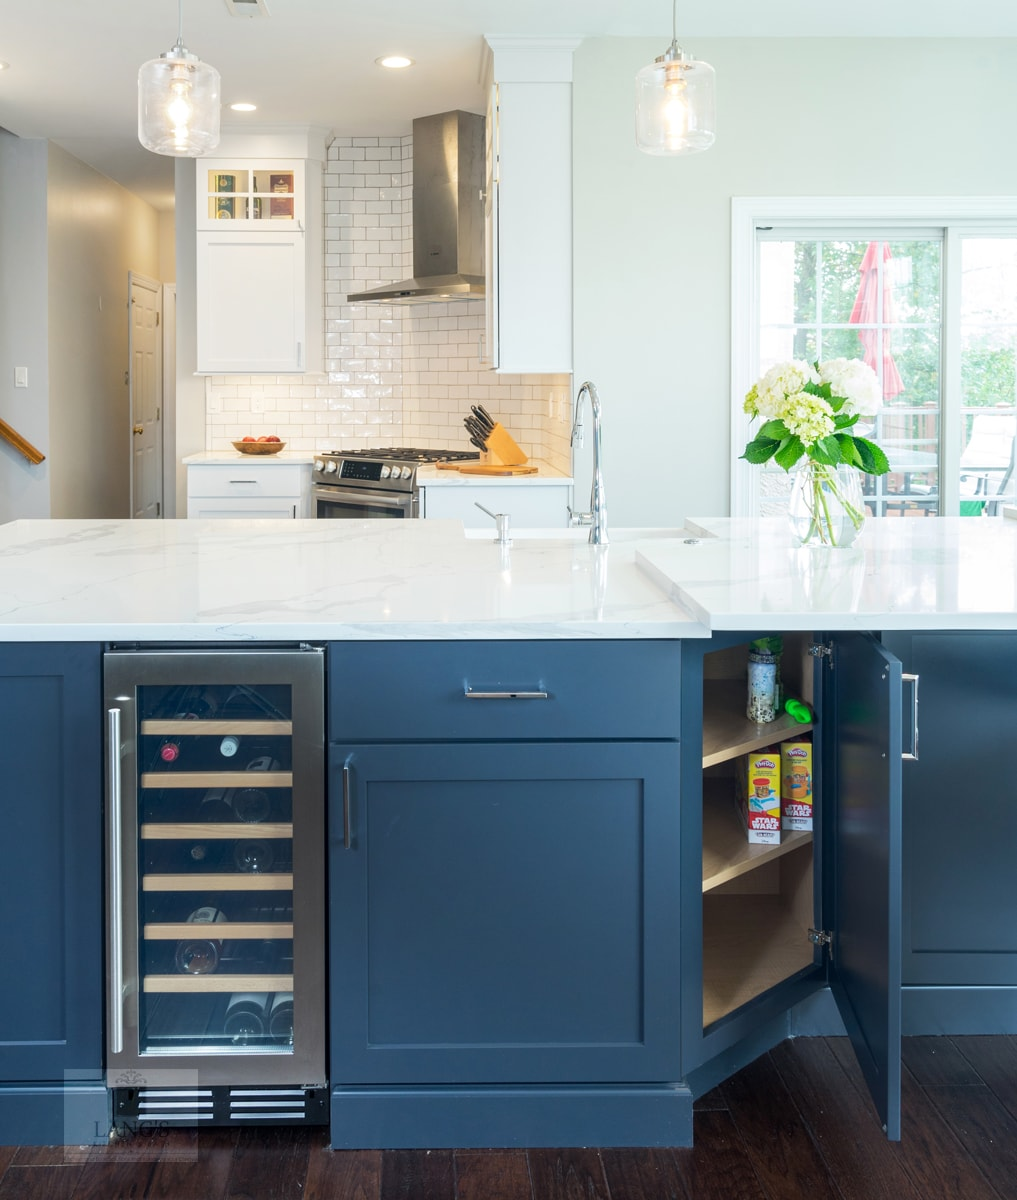 Woodend kitchen design 11_web-min.jpg